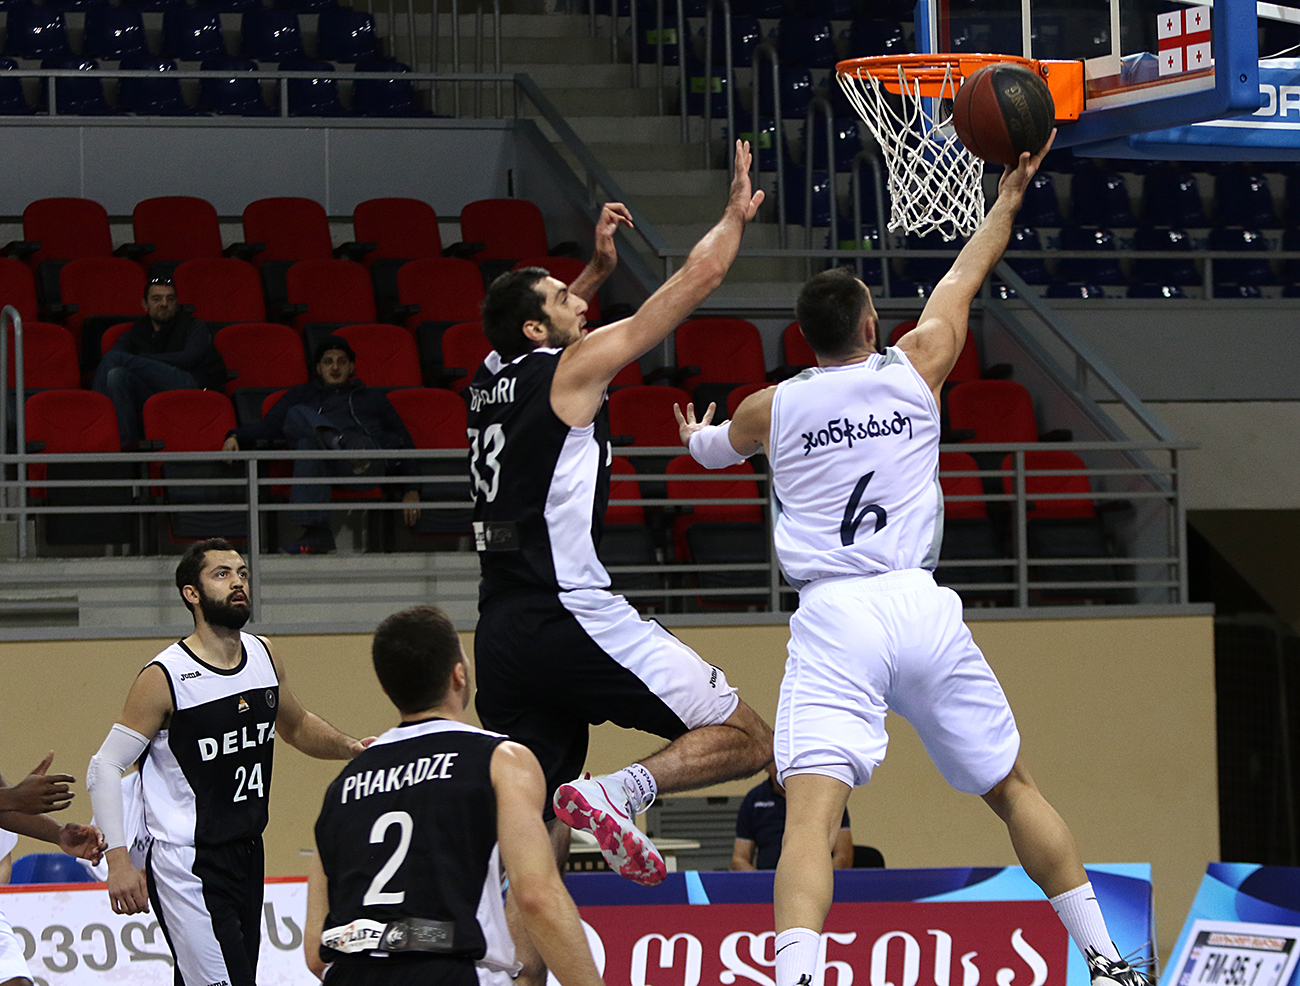 Mgzavrebi defeated Delta 81:74 in the opening match of the Super League